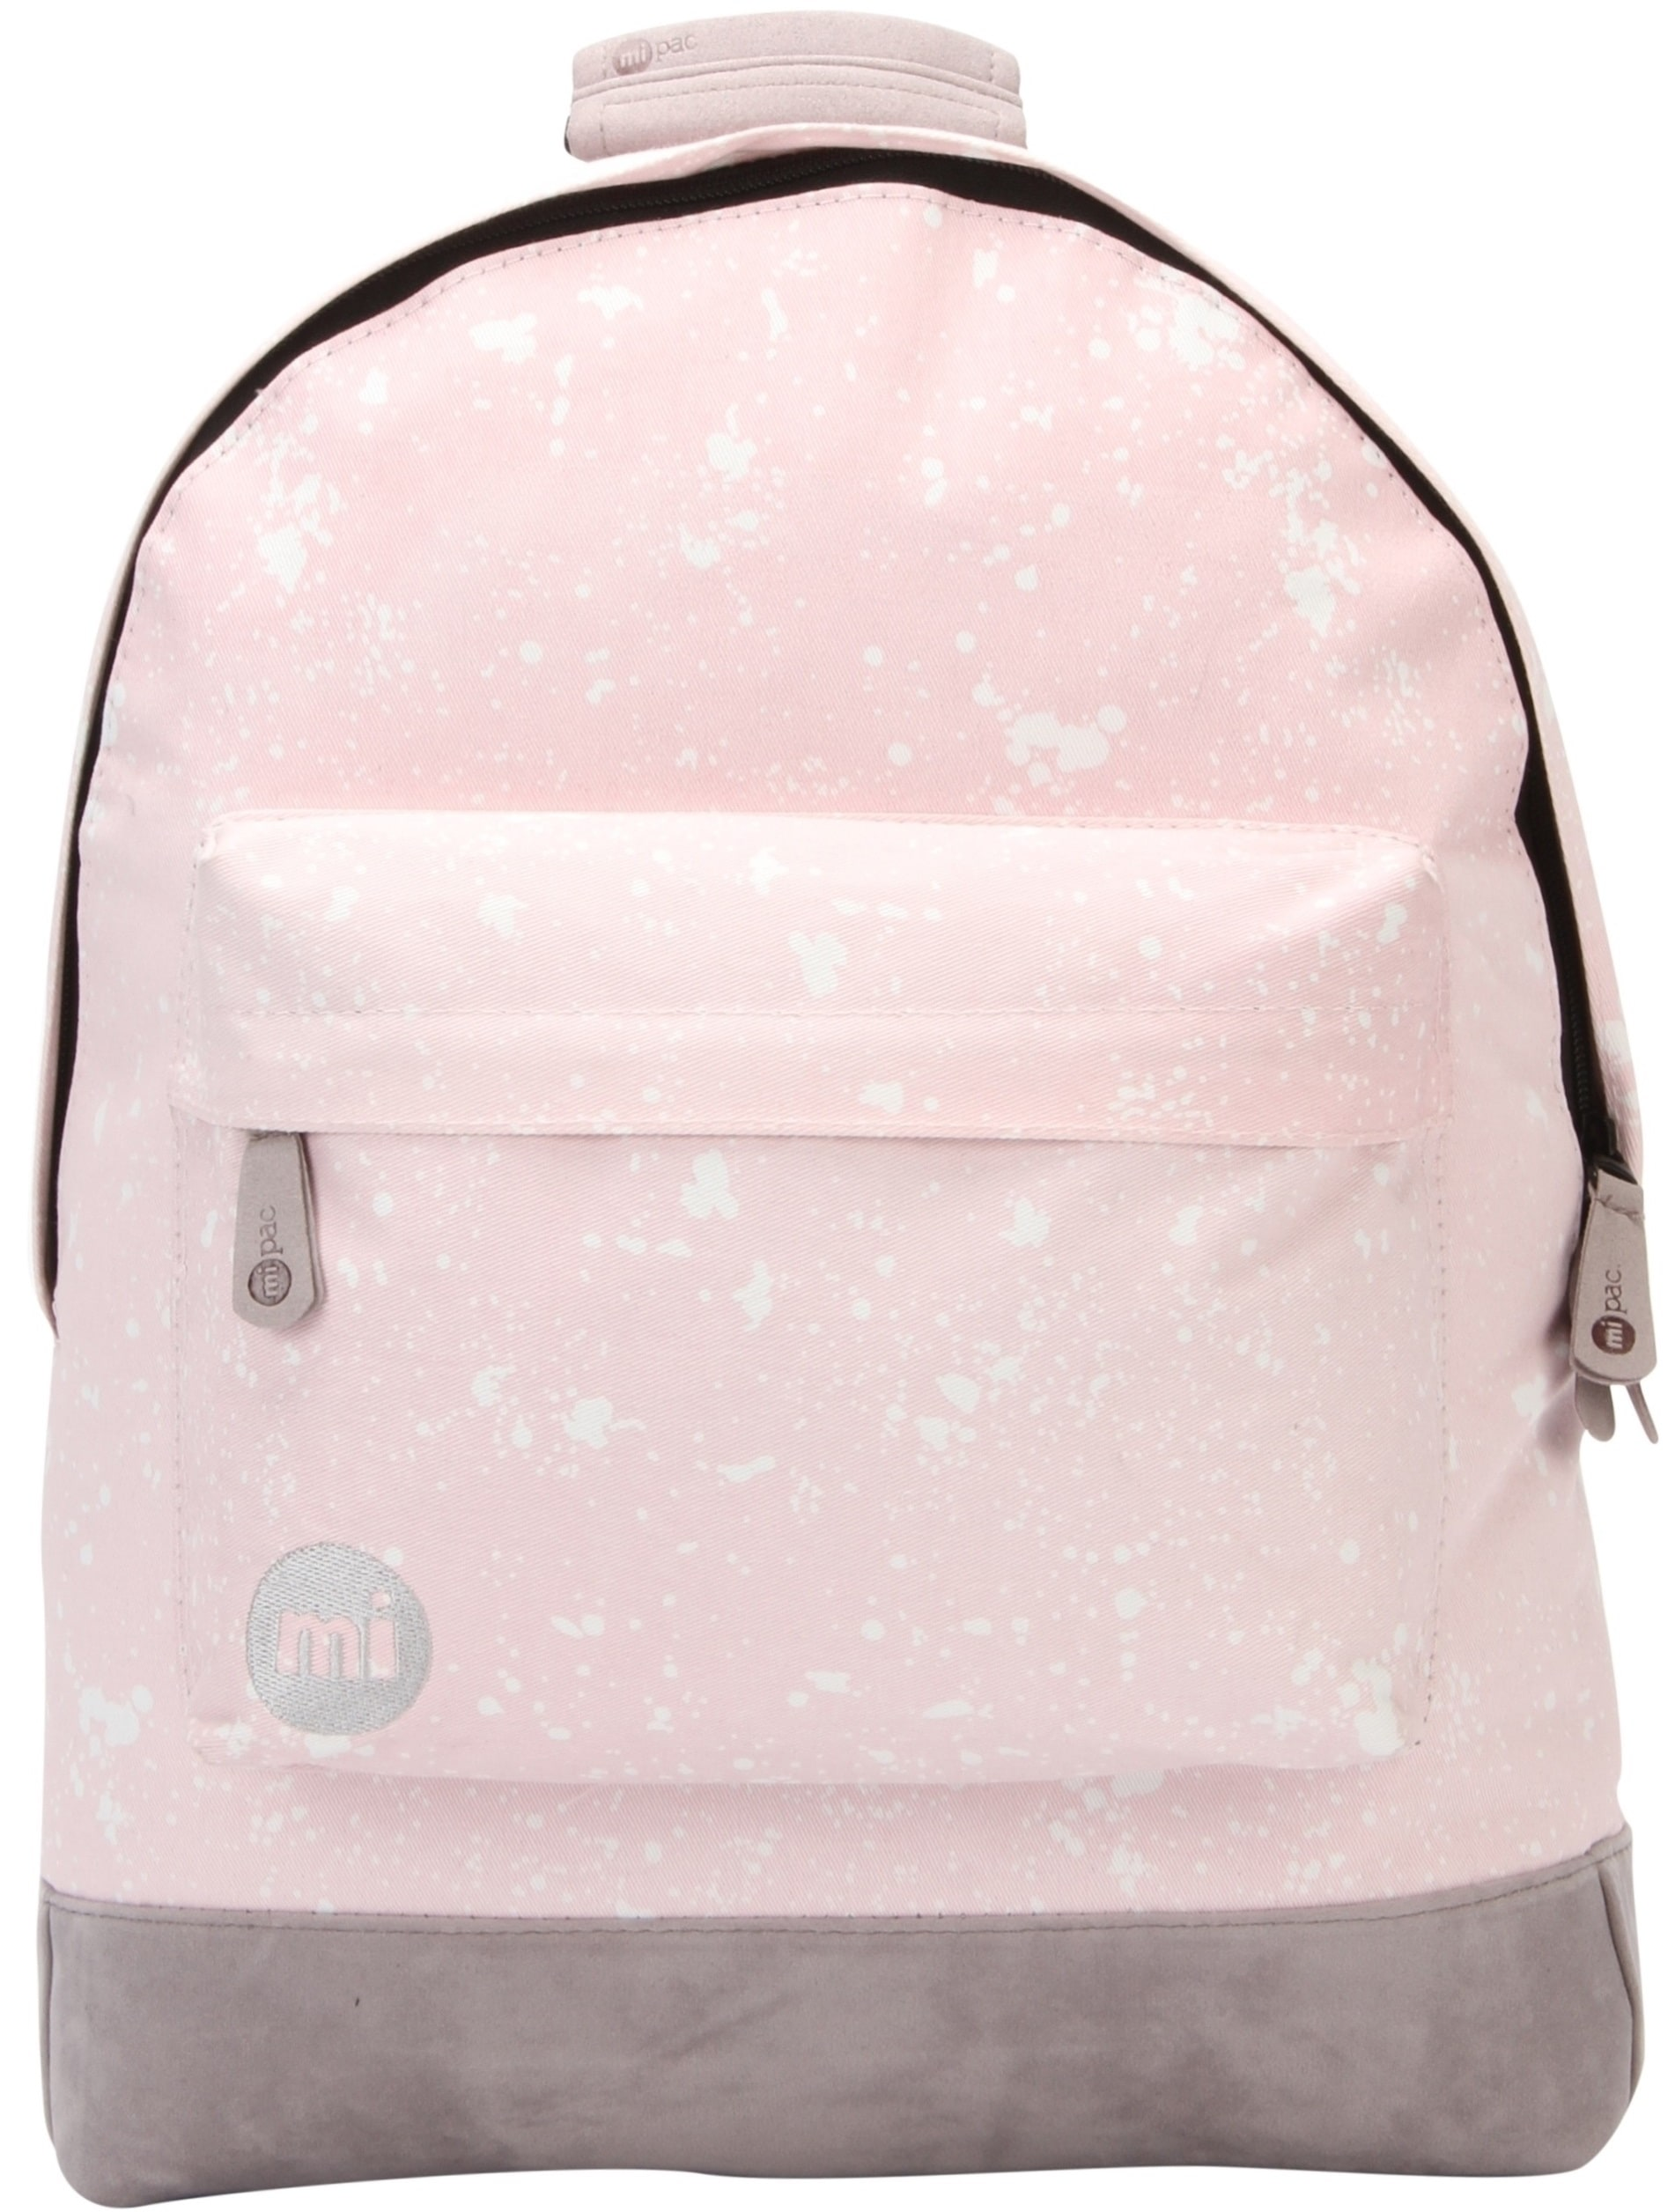 BStock MiPac Splattered Backpack  Pink (Small Mark)